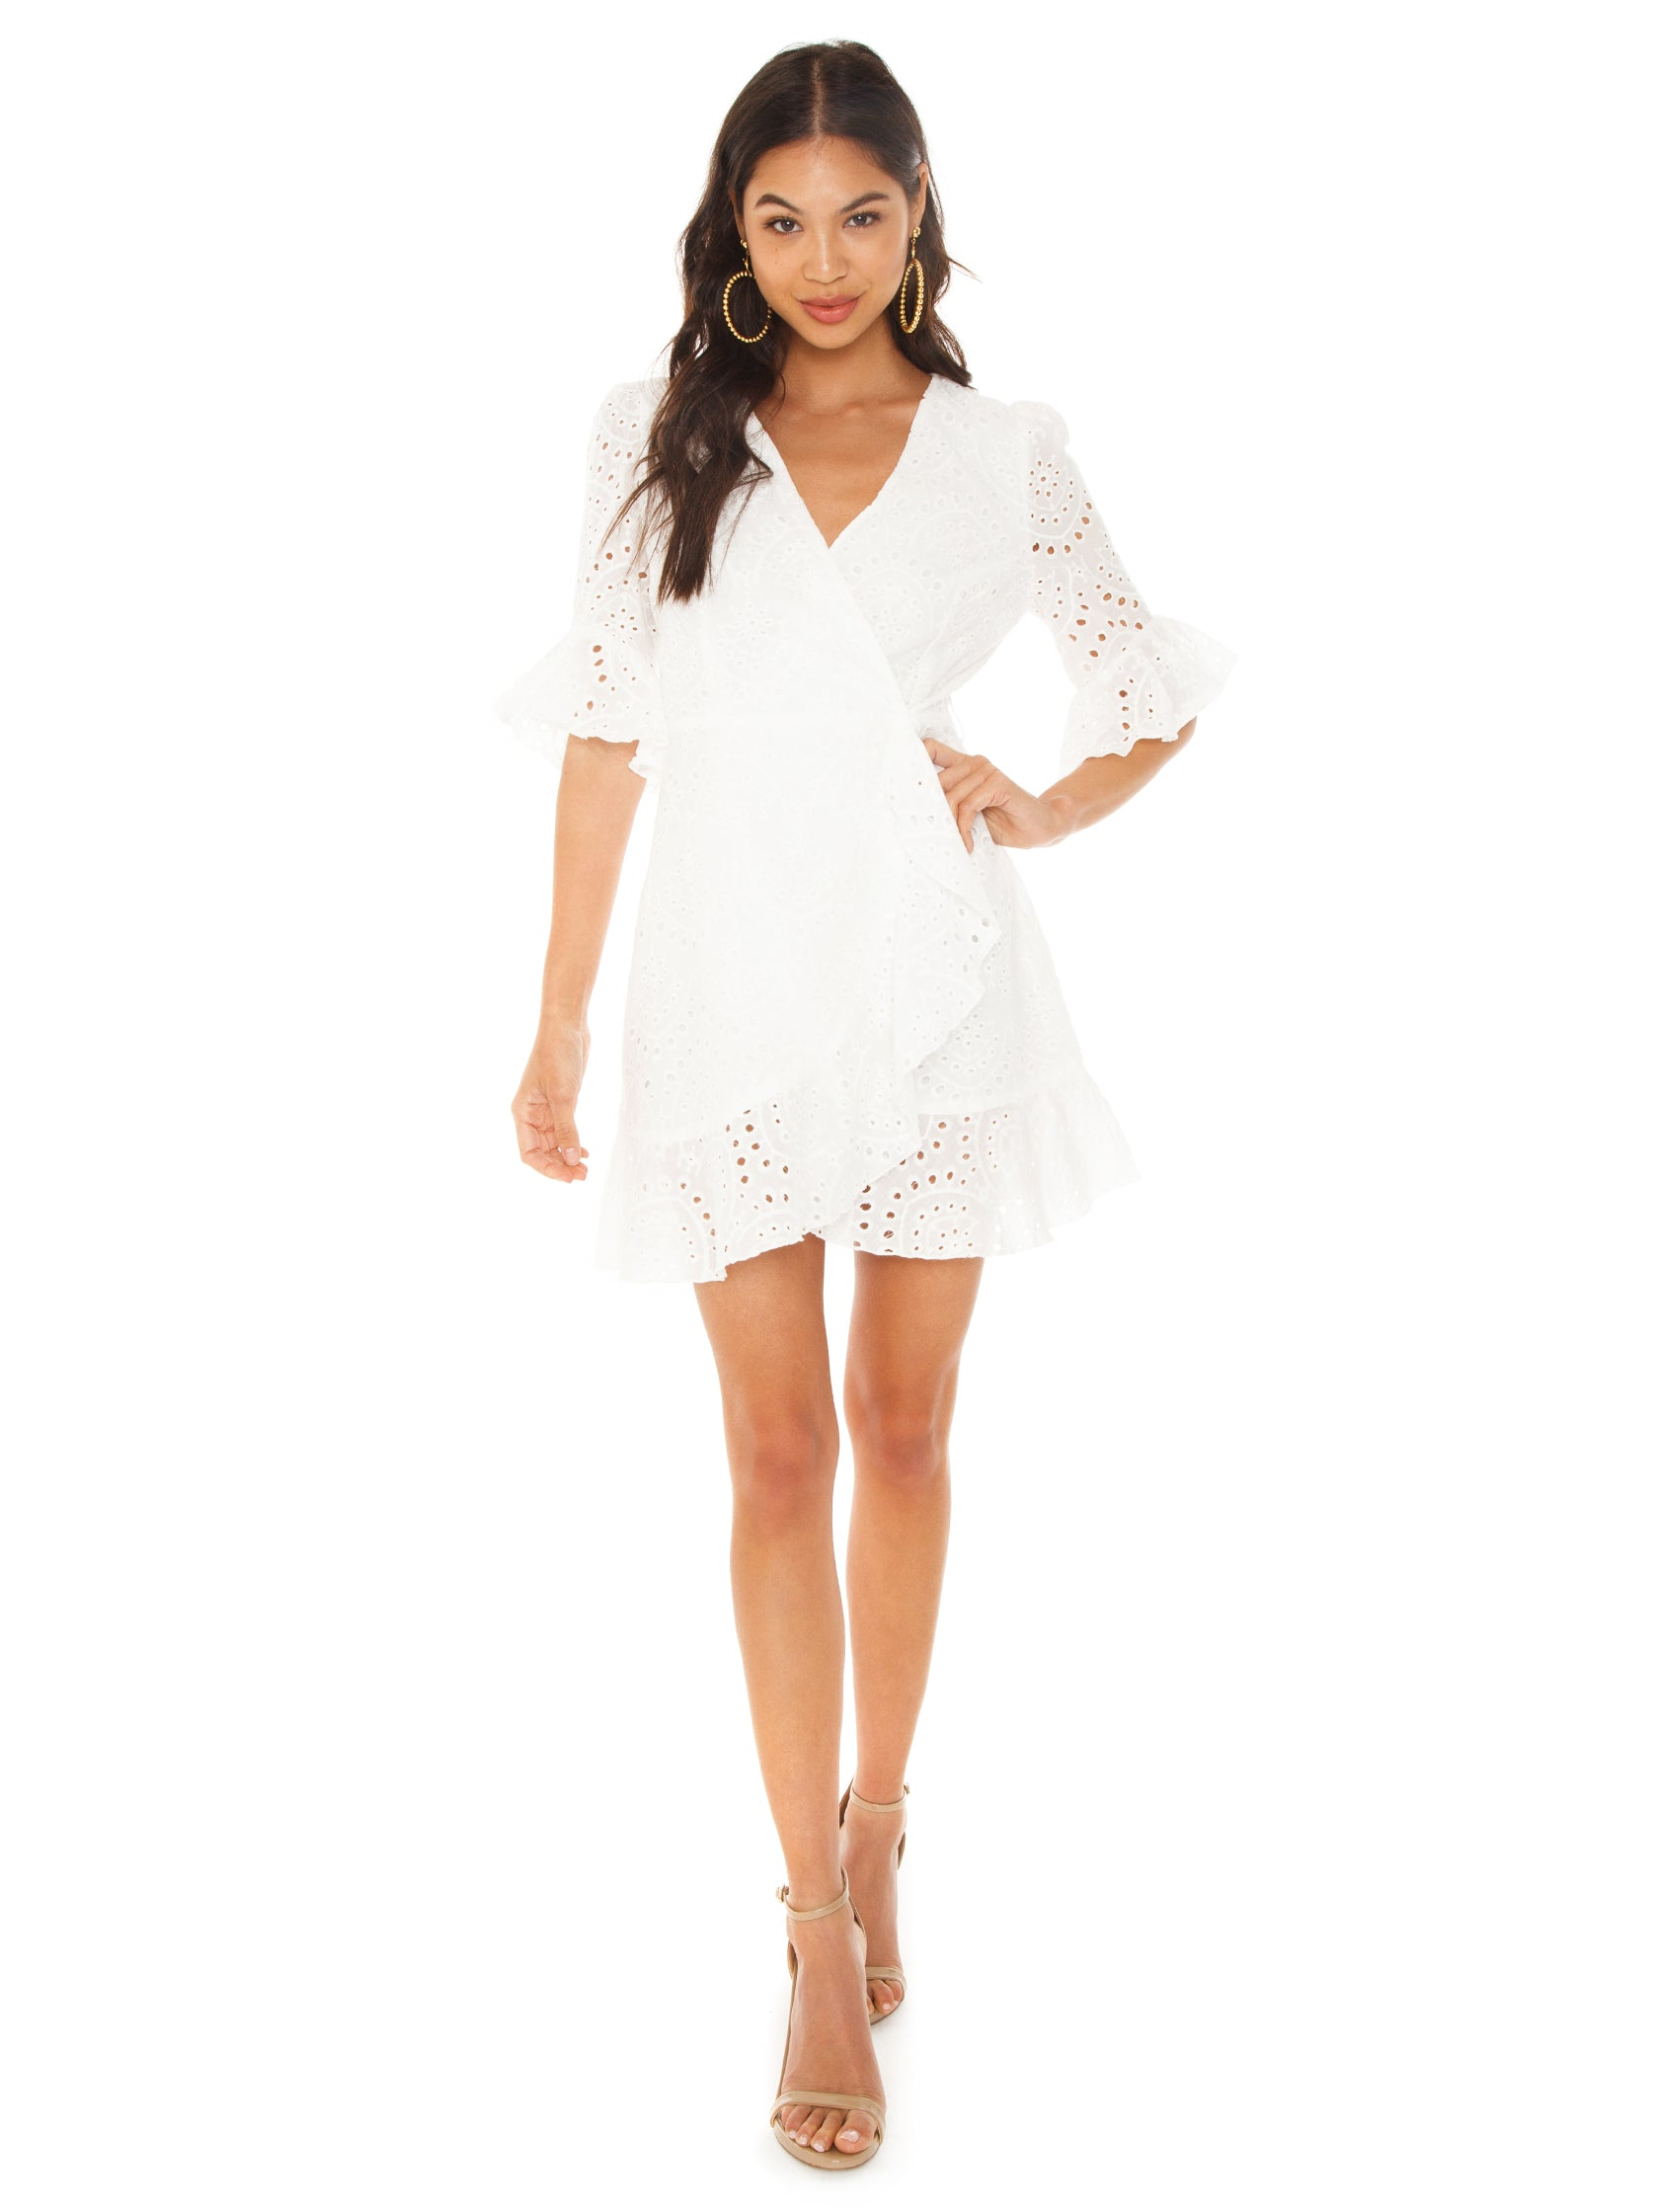 Girl outfit in a dress rental from Lost In Lunar called Romi Wrap Dress